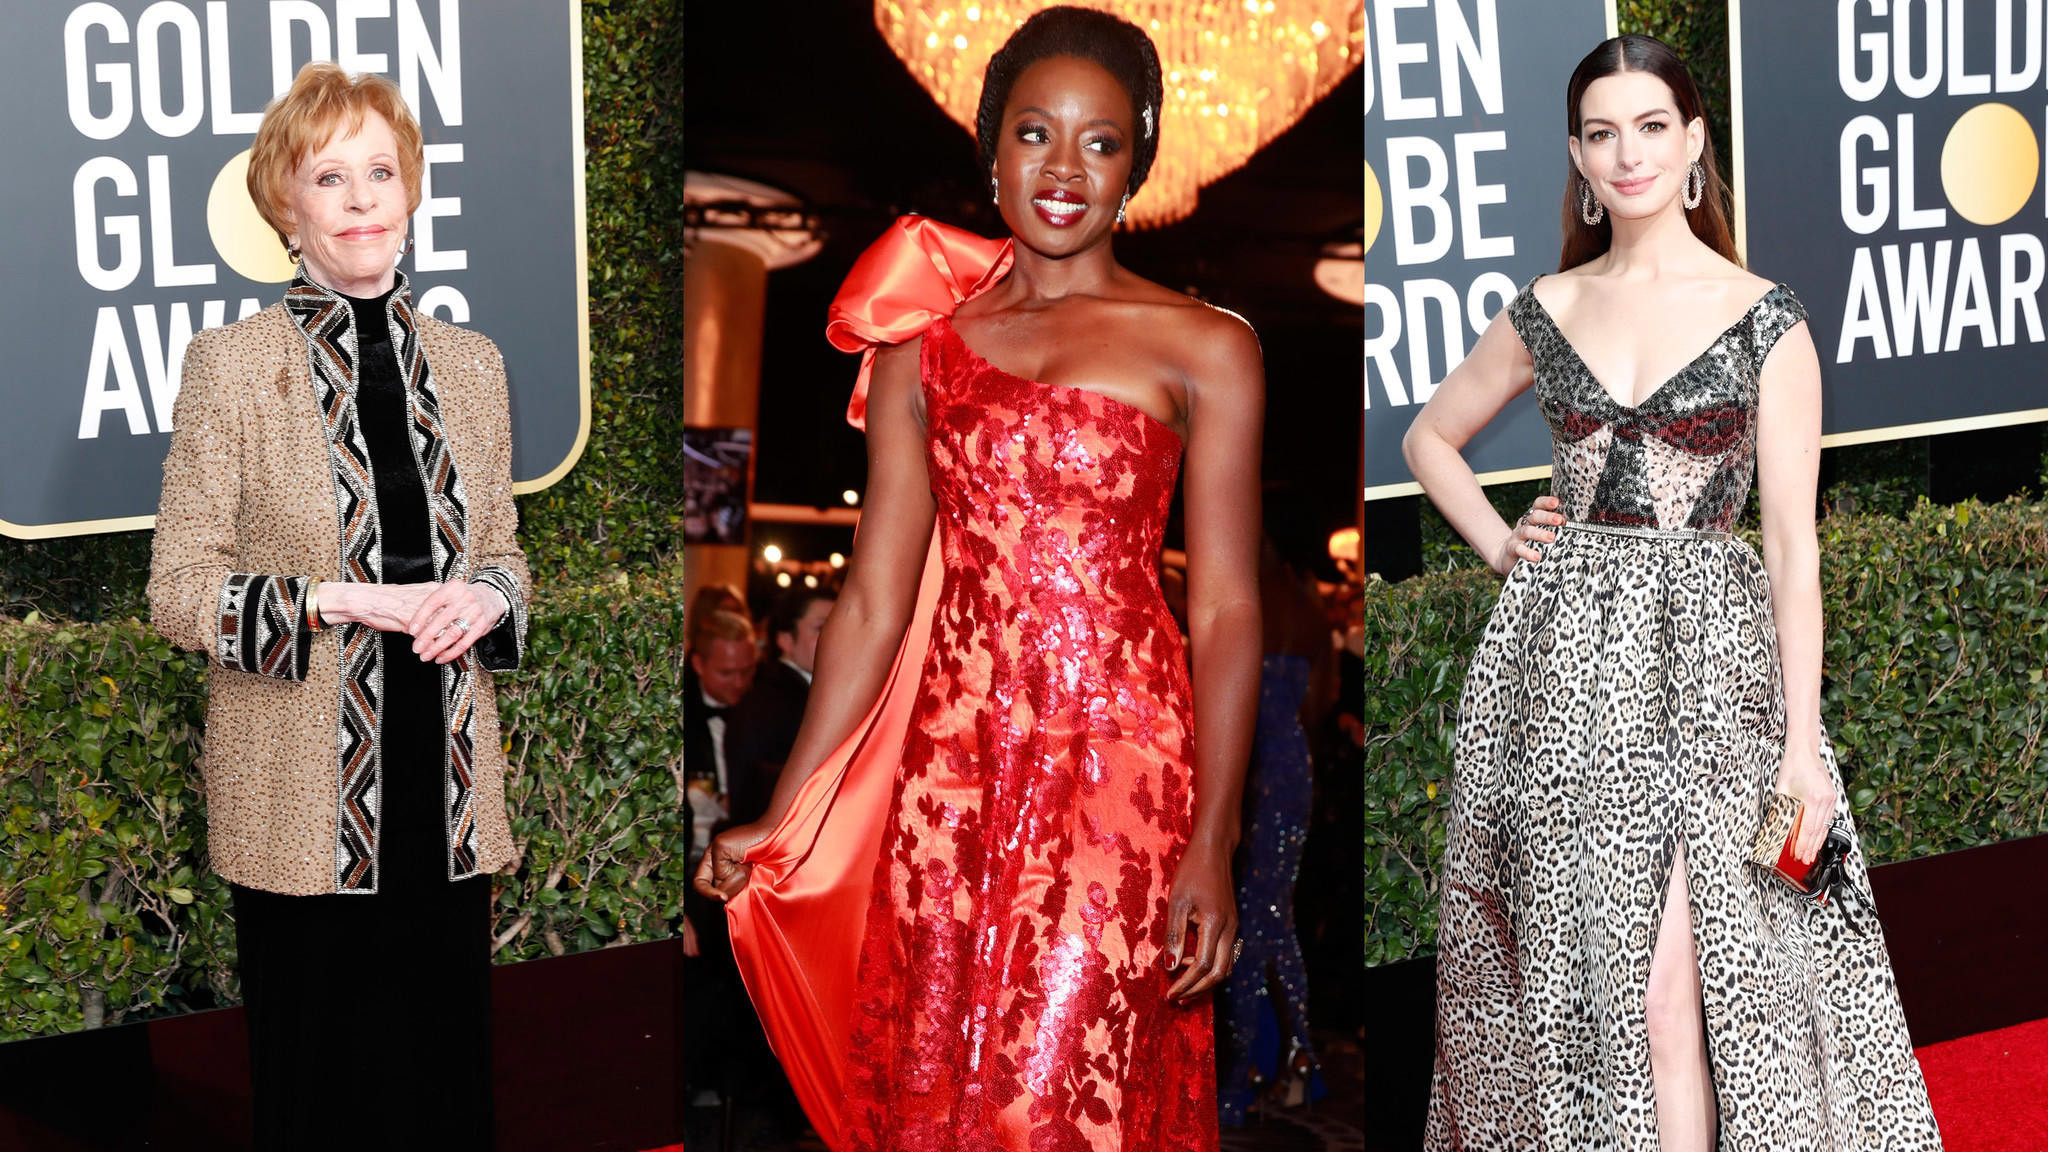 Best And Worst Dressed Golden Globes 2019 Best and worst looks from the Golden Globes   Capital Gazette